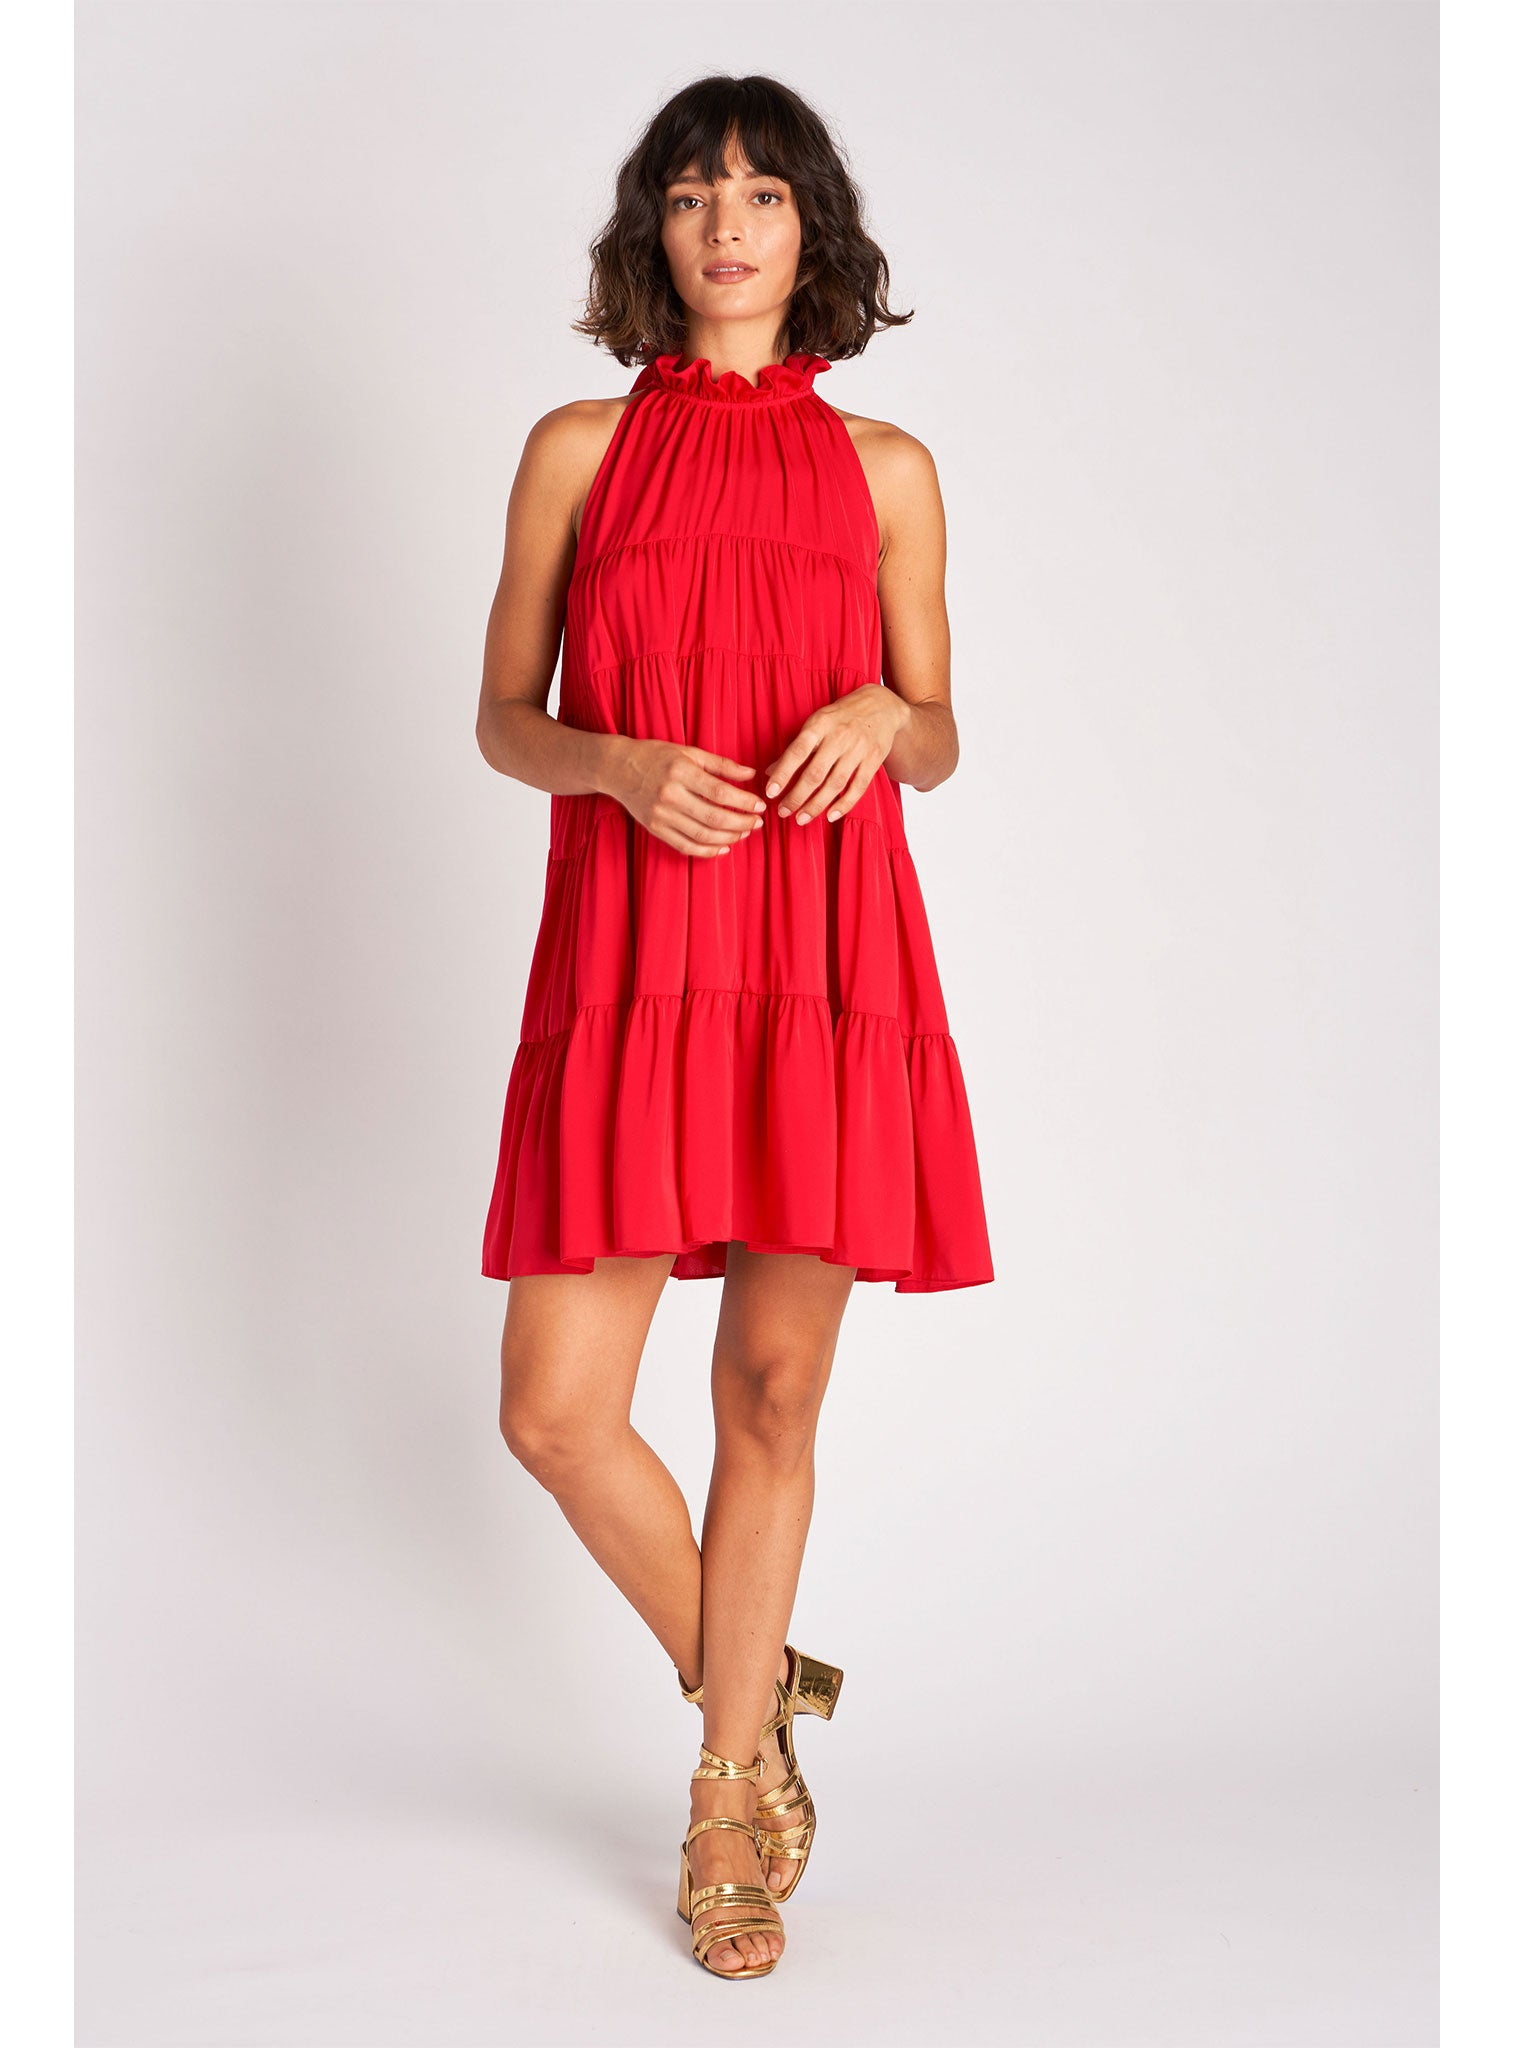 Billy Dress | Lipstick Red